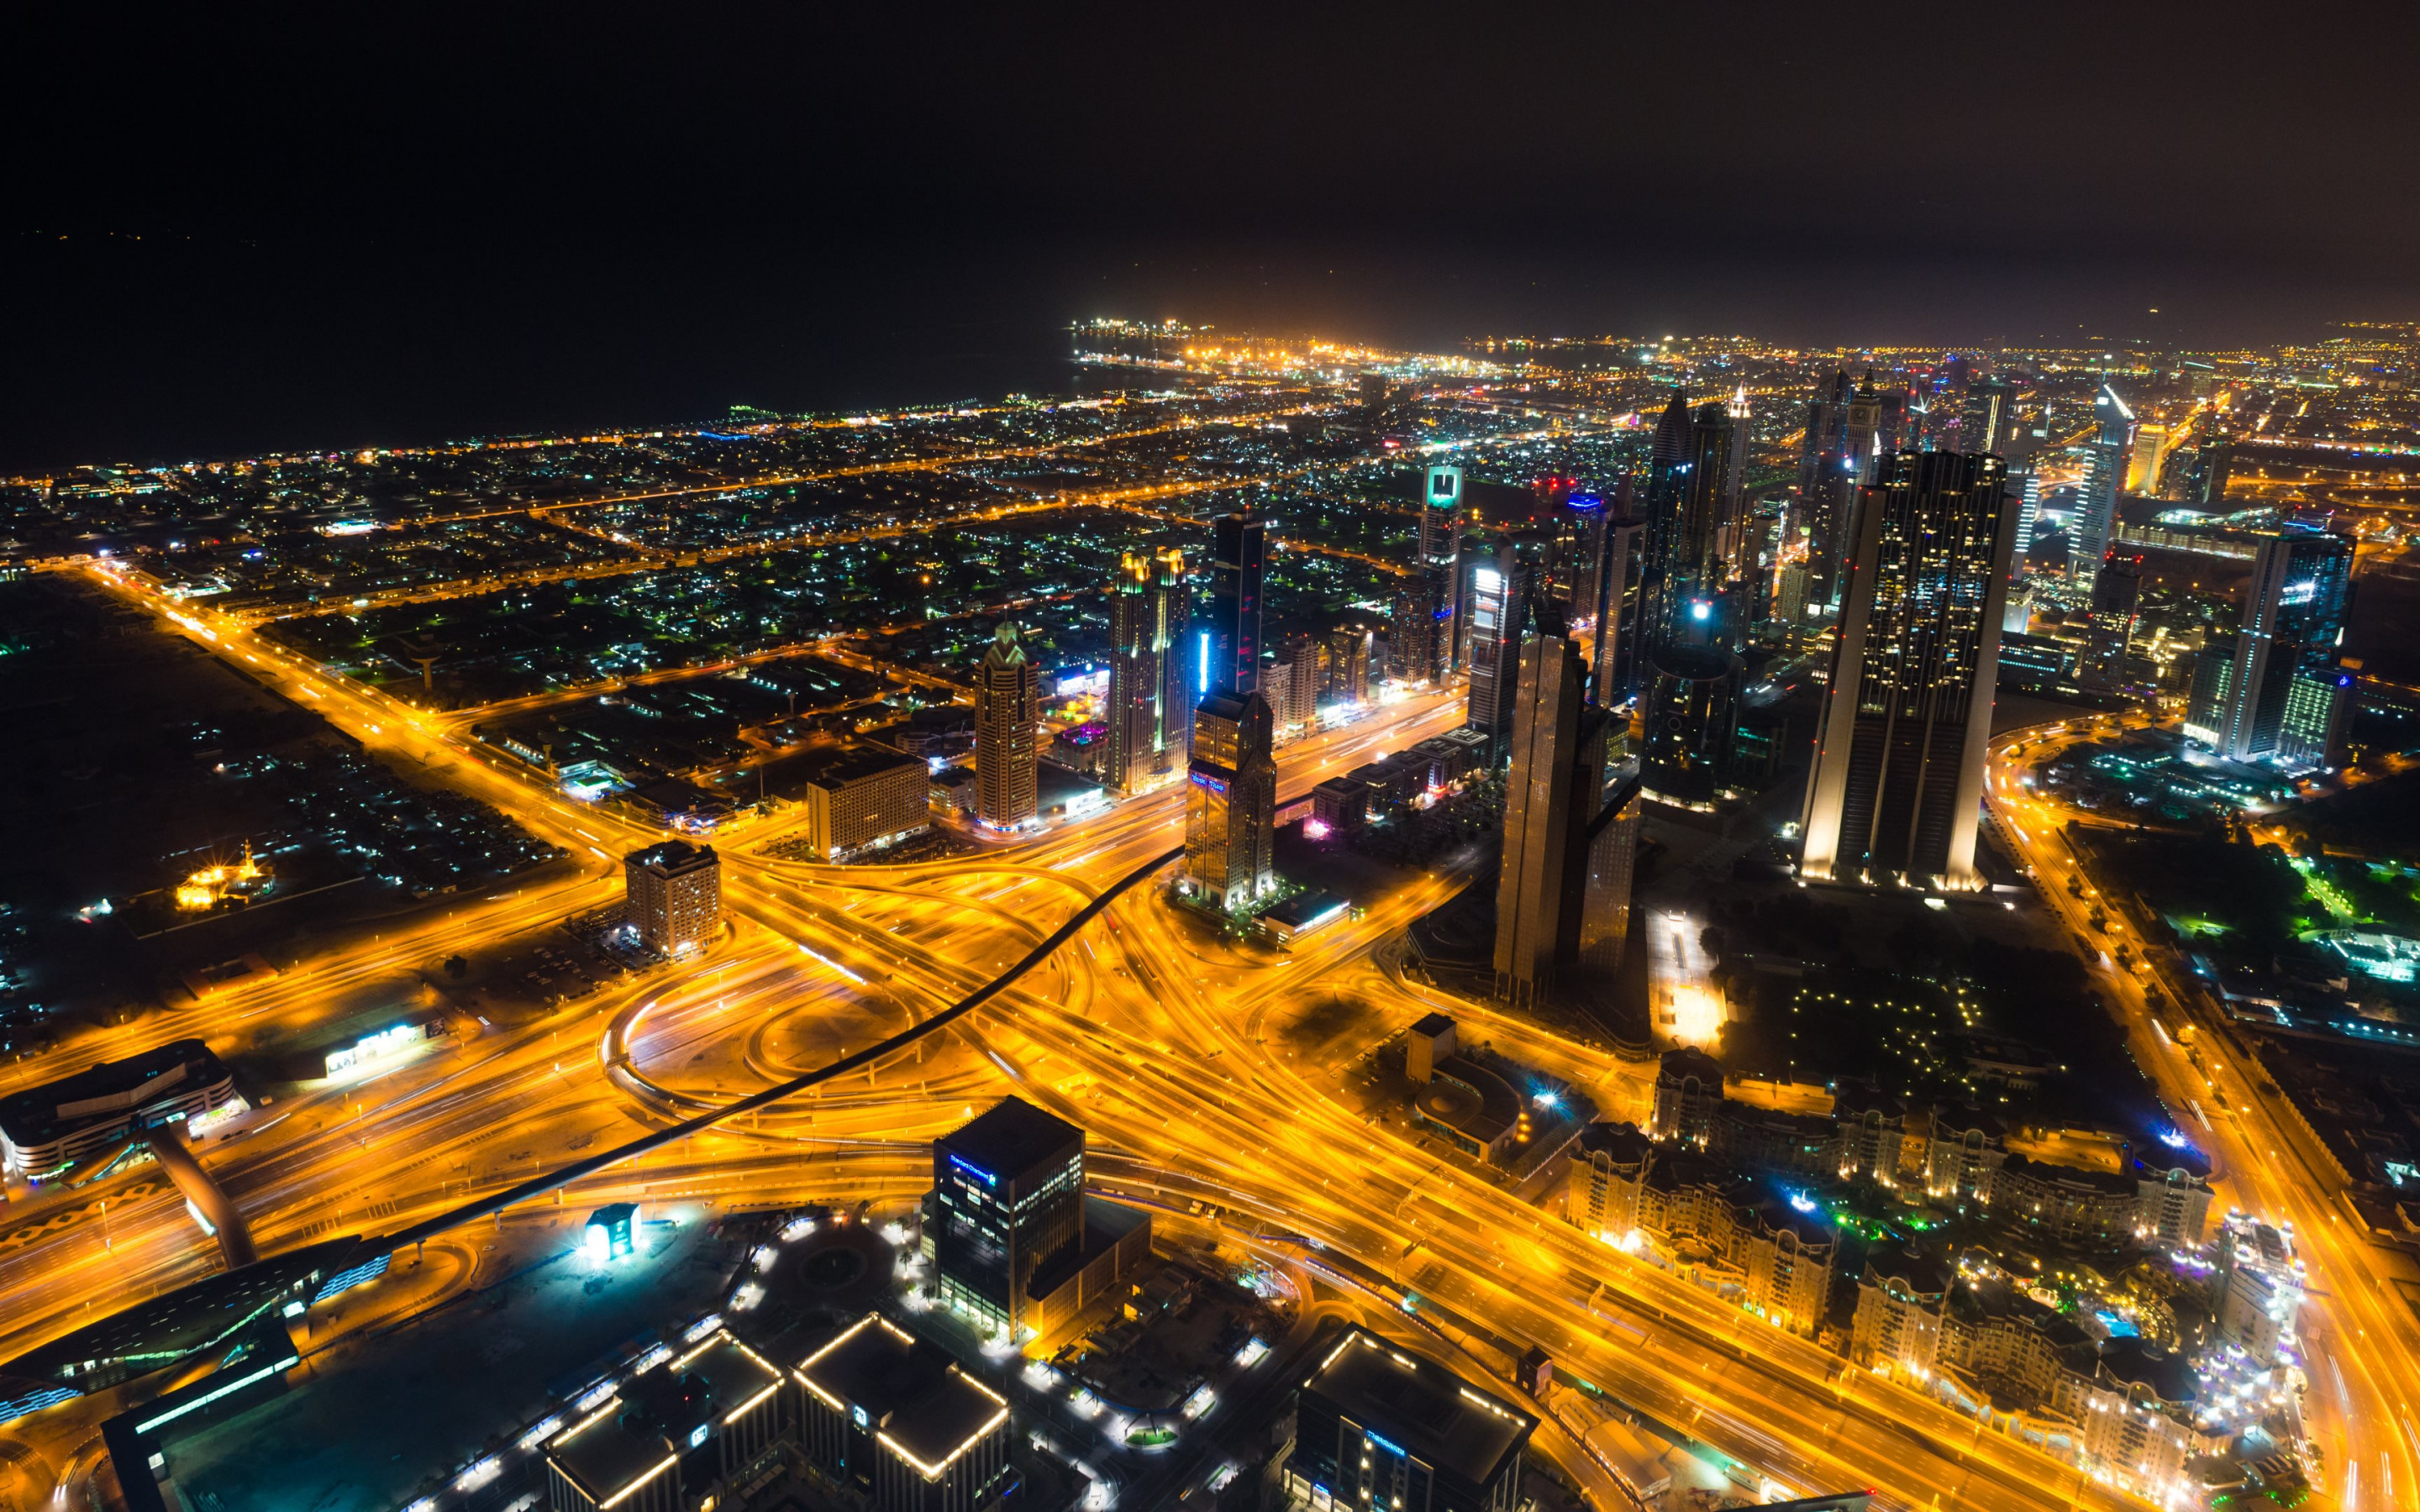 Dubai landscape by night | 2880x1800 wallpaper